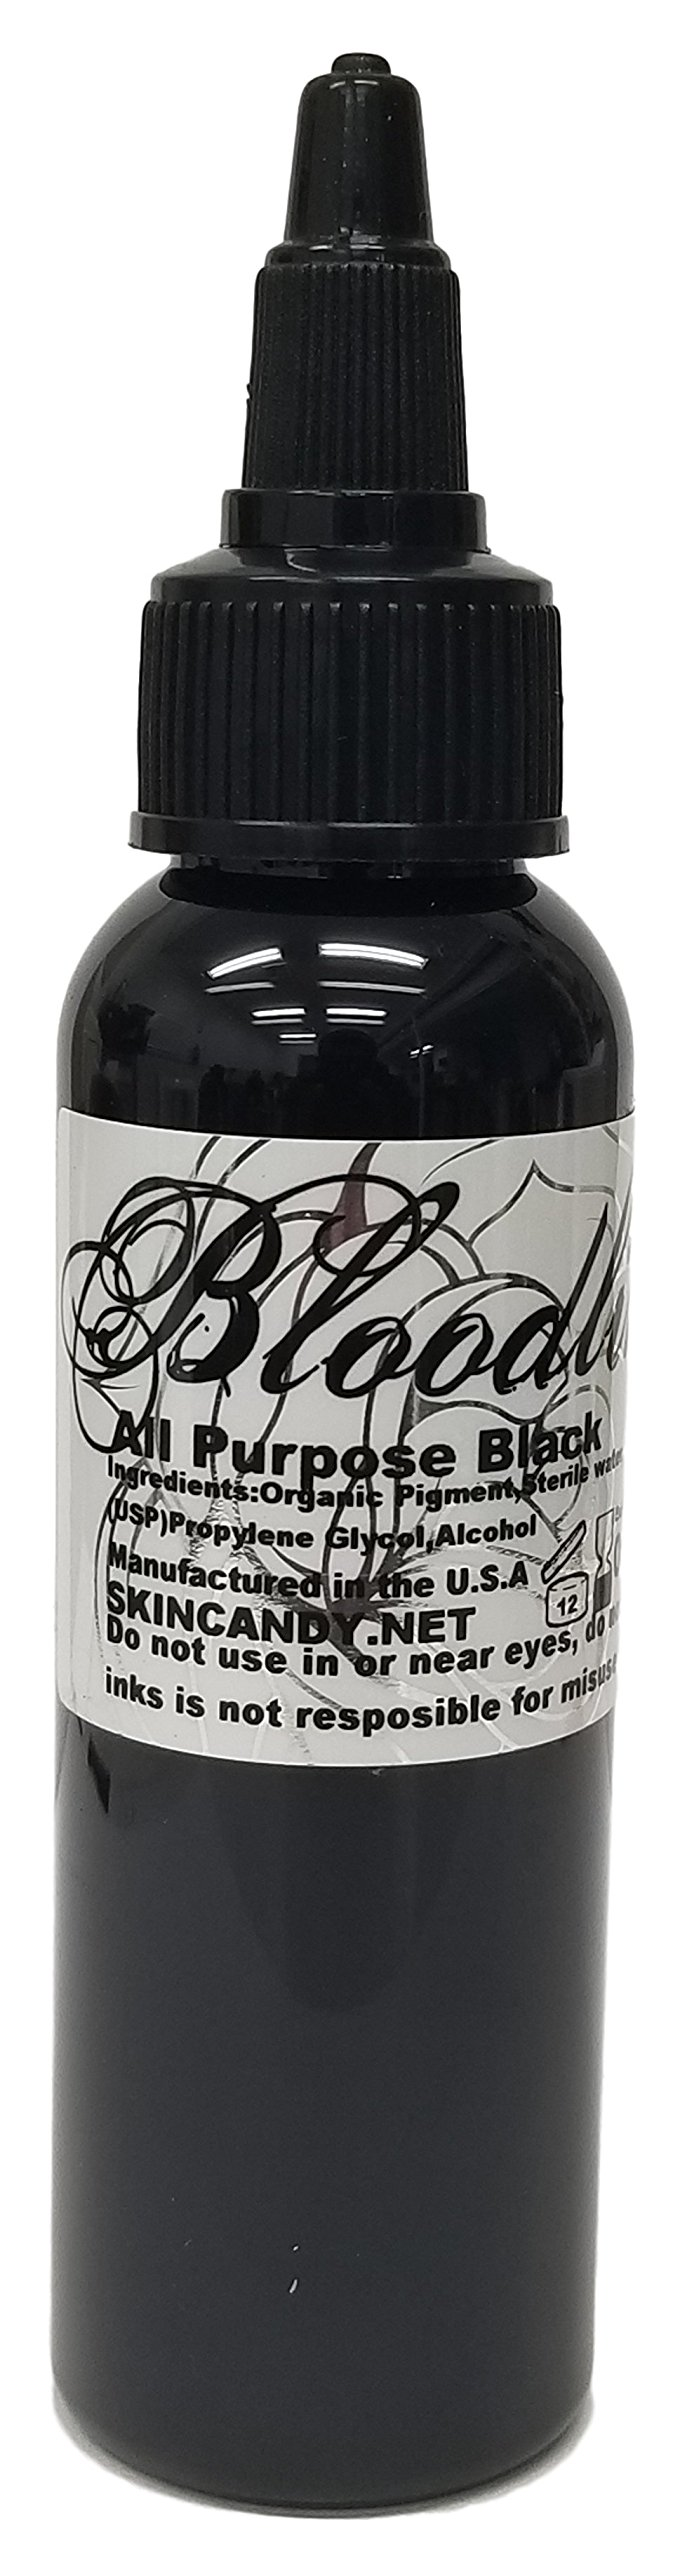 Bloodline Tattoo Ink - All Purpose Black - 2 ounce